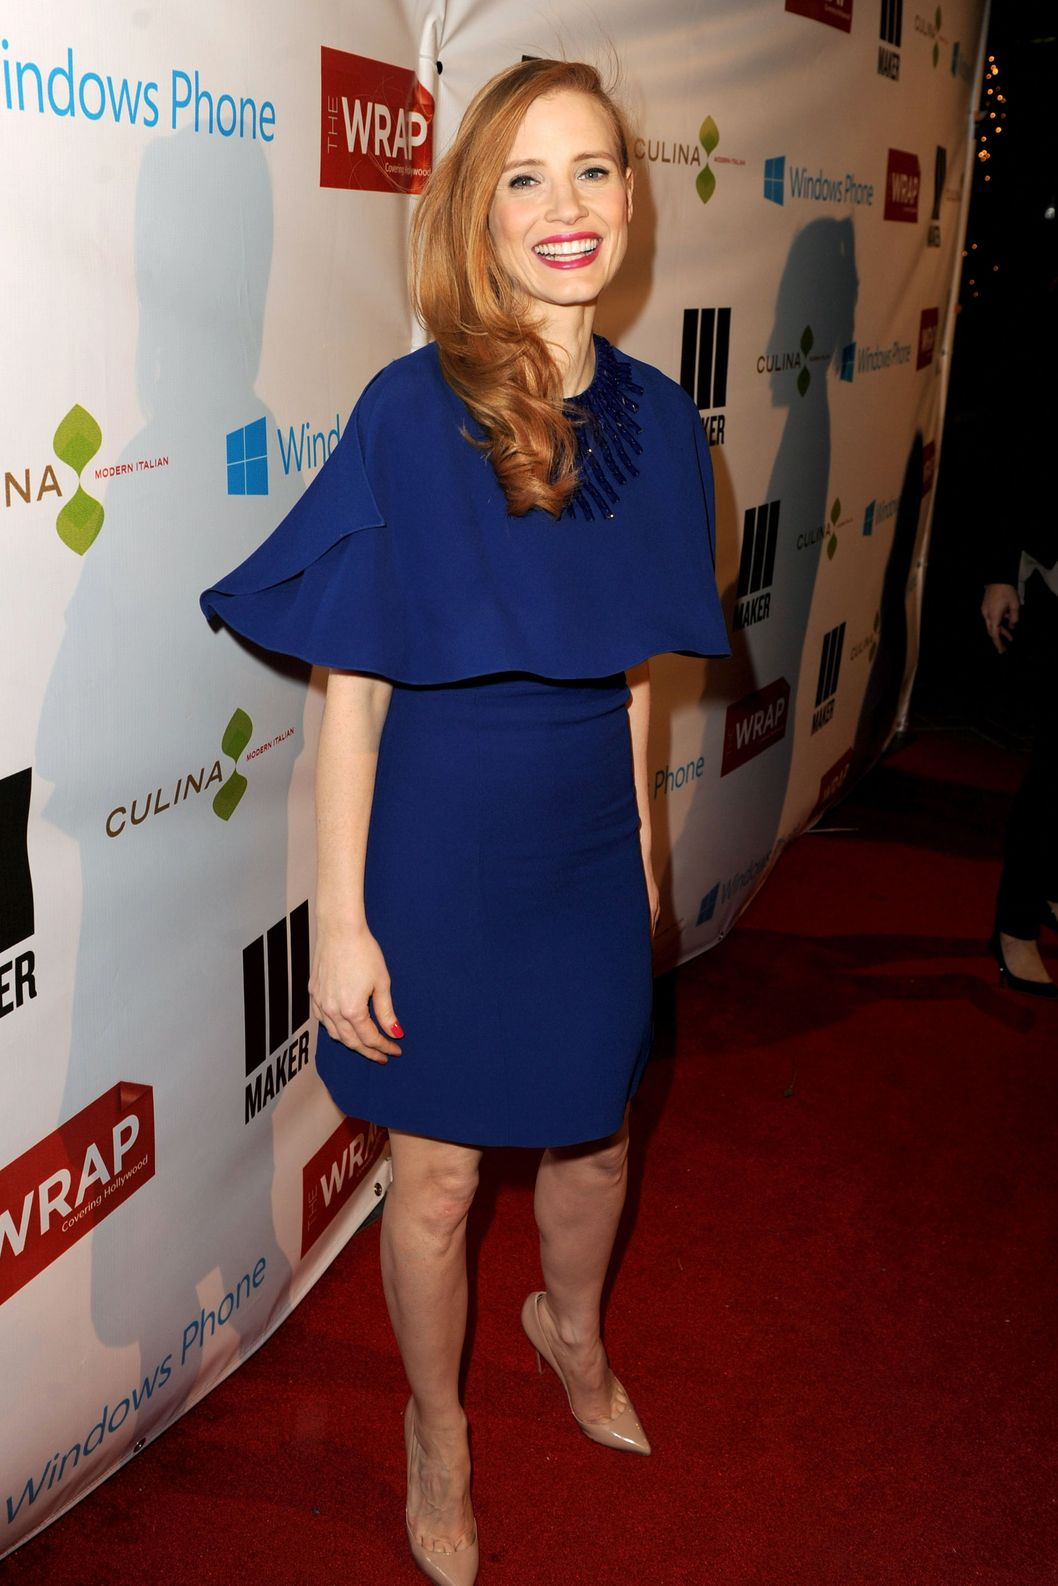 Actress Jessica Chastain arrives at TheWrap 4th Annual Pre-Oscar Party at Four Seasons Hotel Los Angeles at Beverly Hills on February 20, 2013 in Beverly Hills, California.